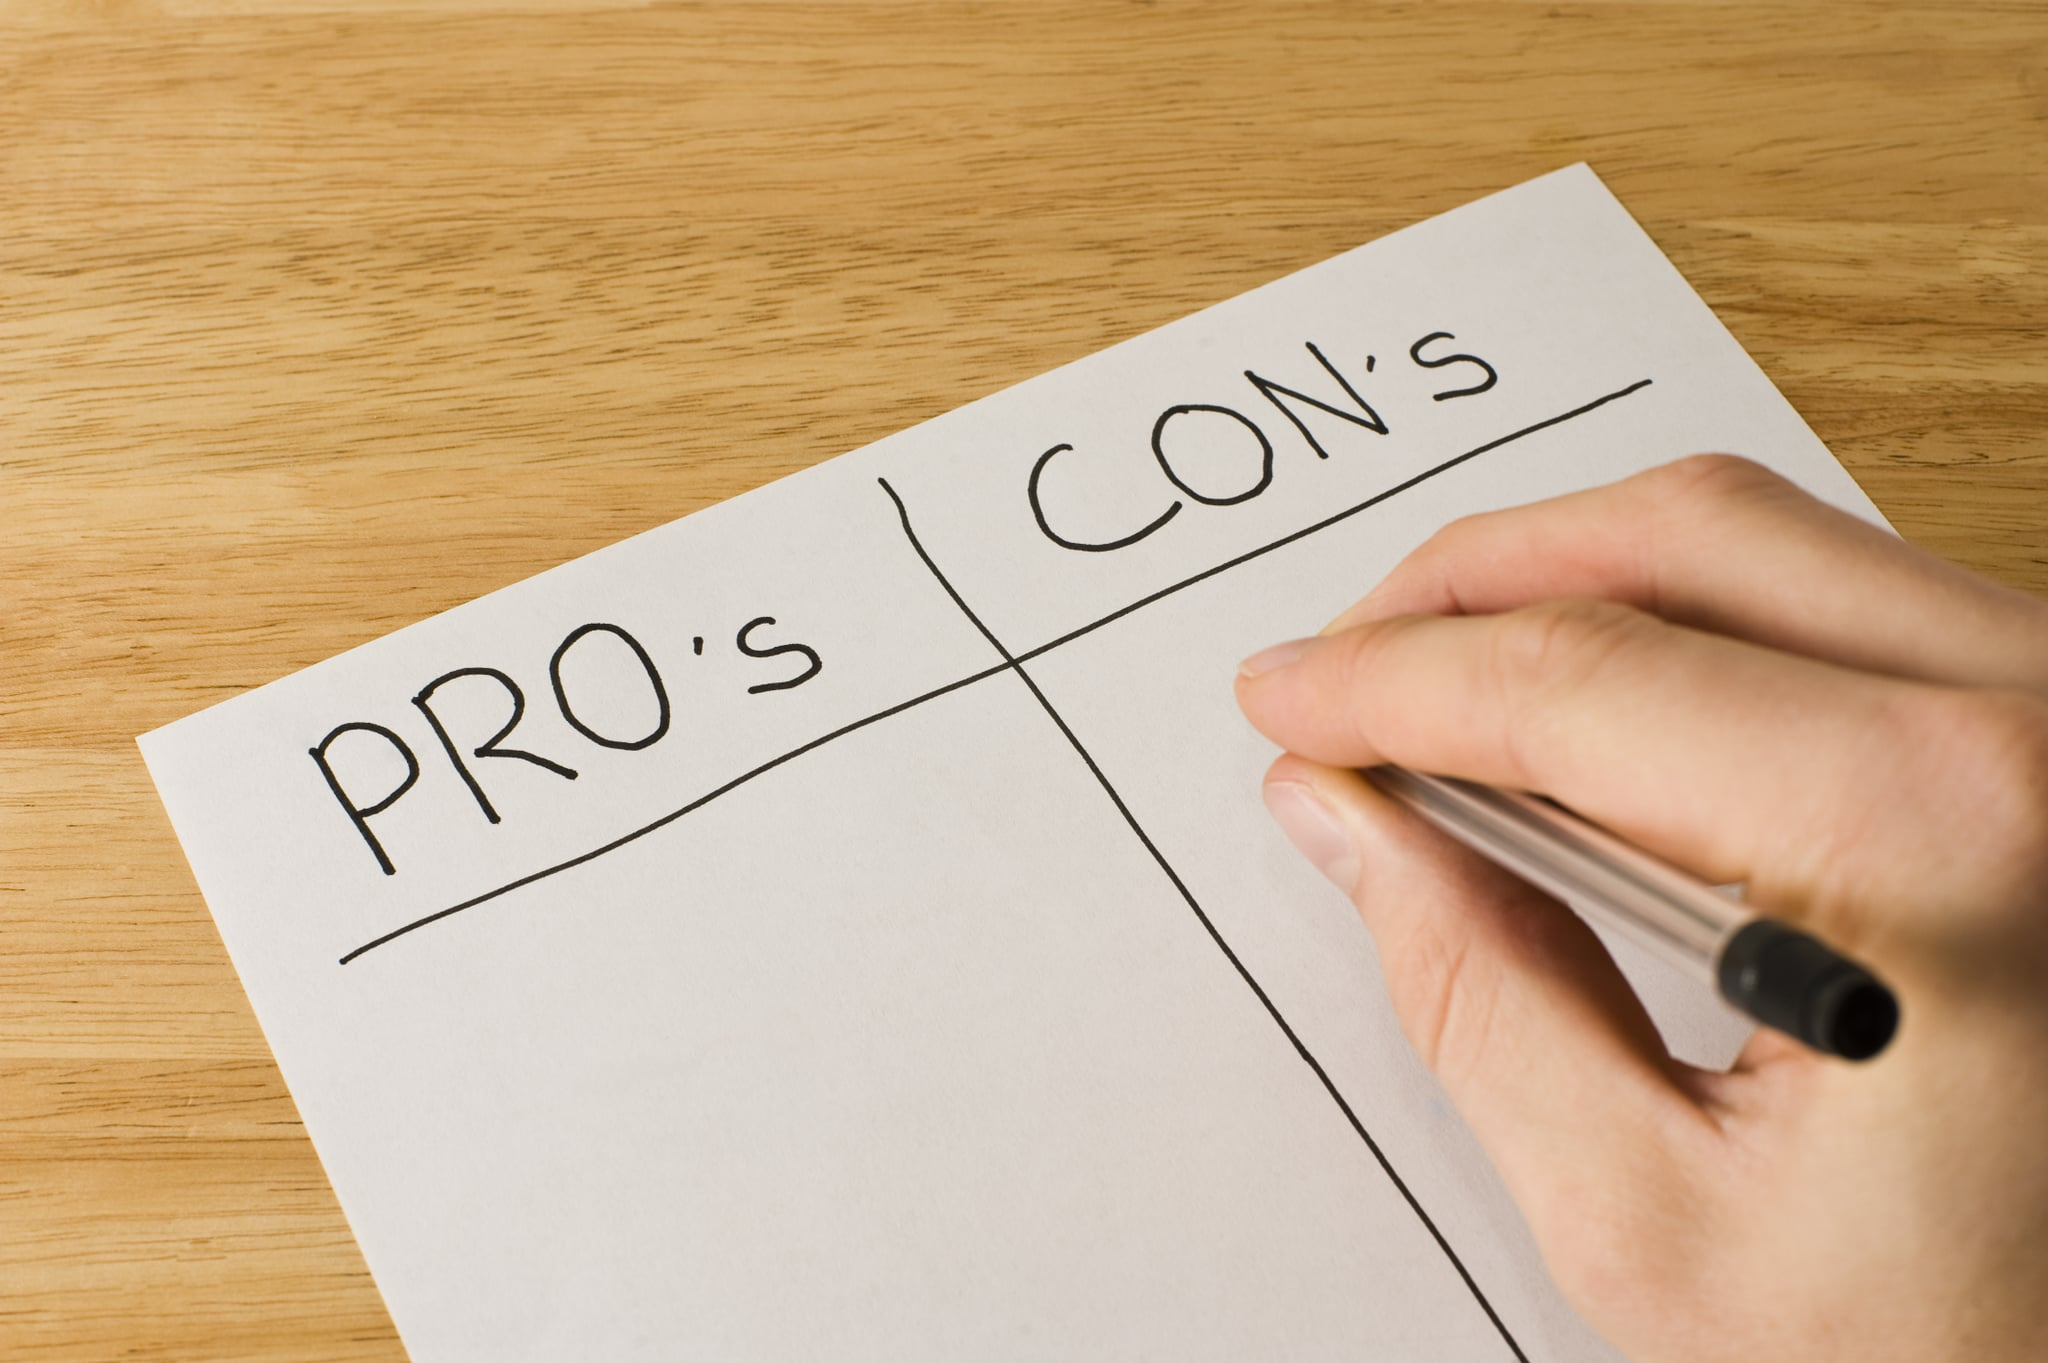 Make a Pros and Cons List   Healthspectra